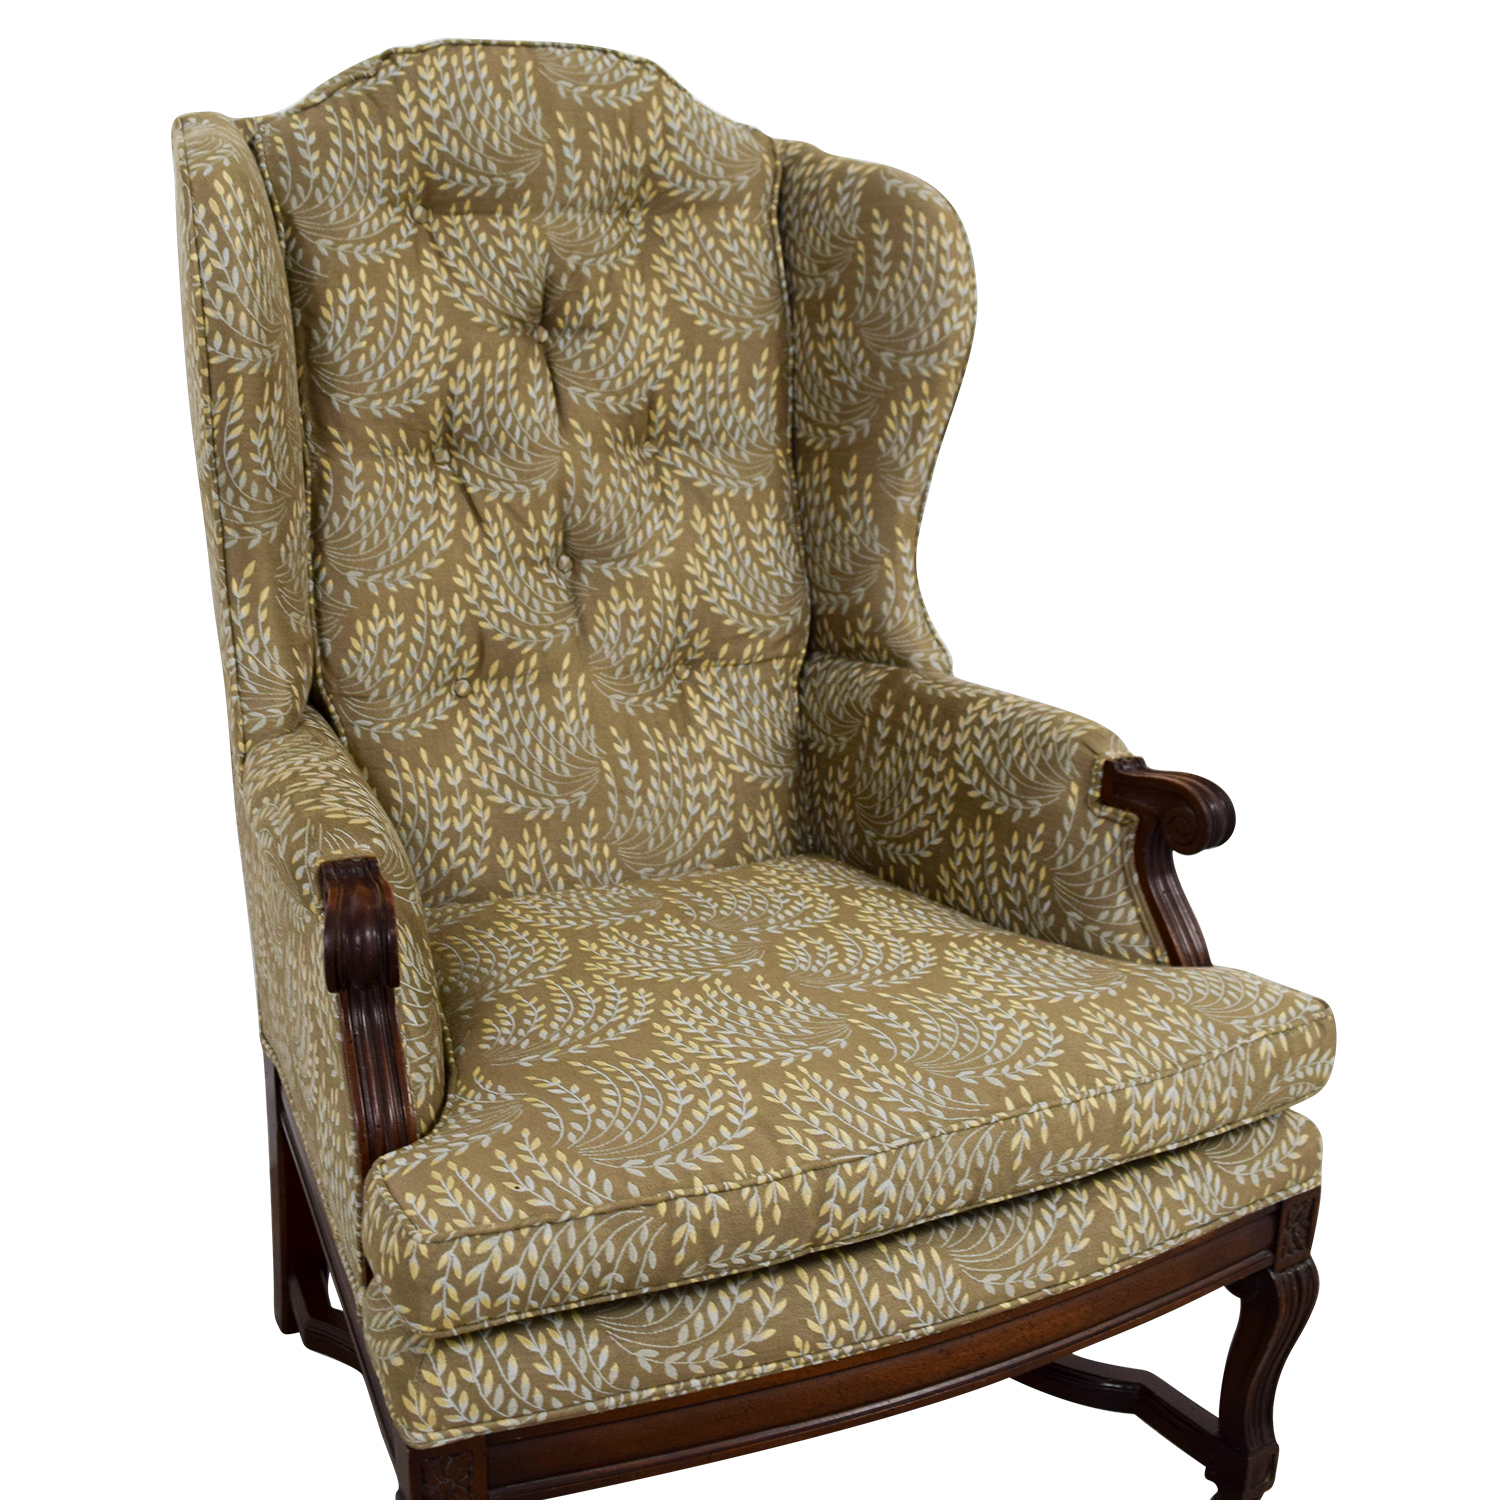 Hickory Olive Vintage Accent Chair / Accent Chairs